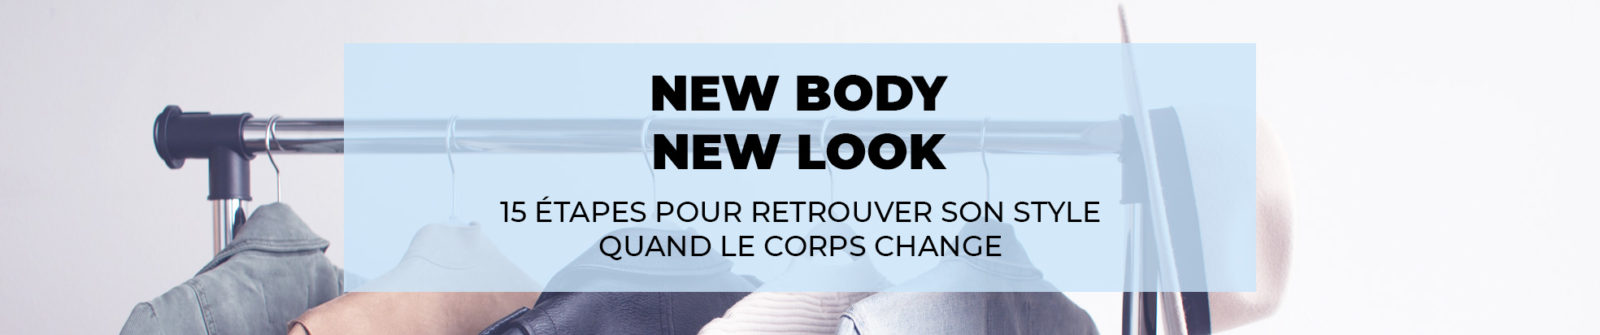 New Body New Look - 15 étapes pour retrouver son style quand le corps change